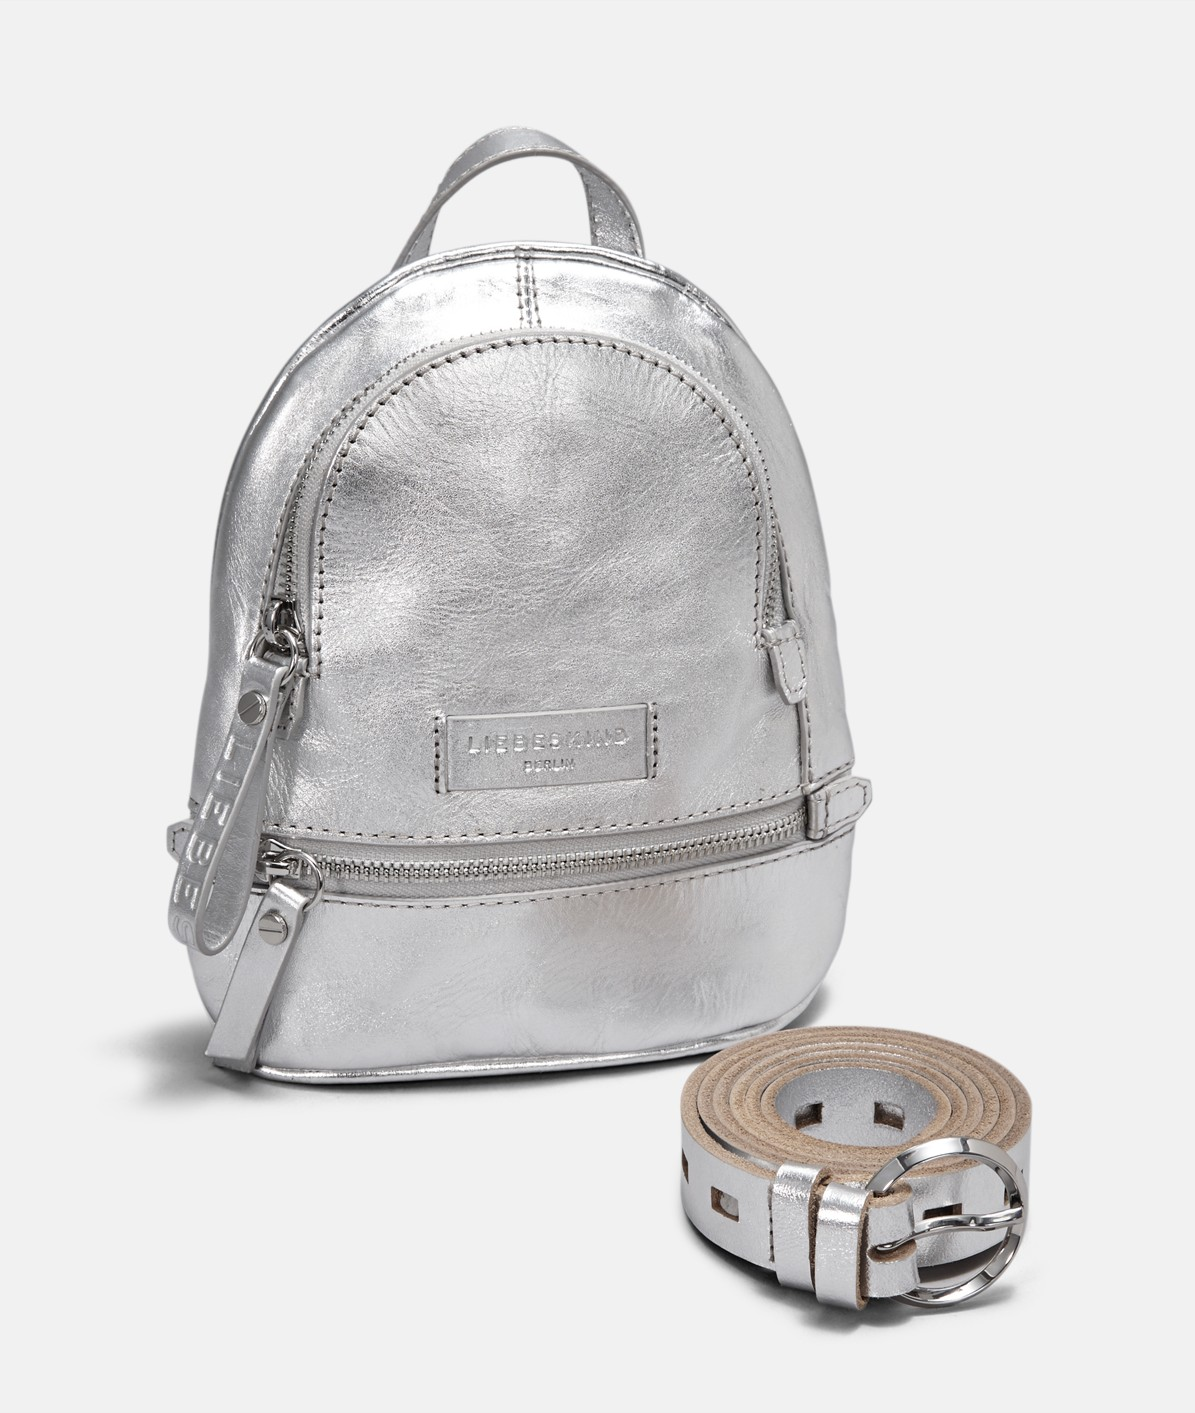 Belt bag in a rucksack design from liebeskind